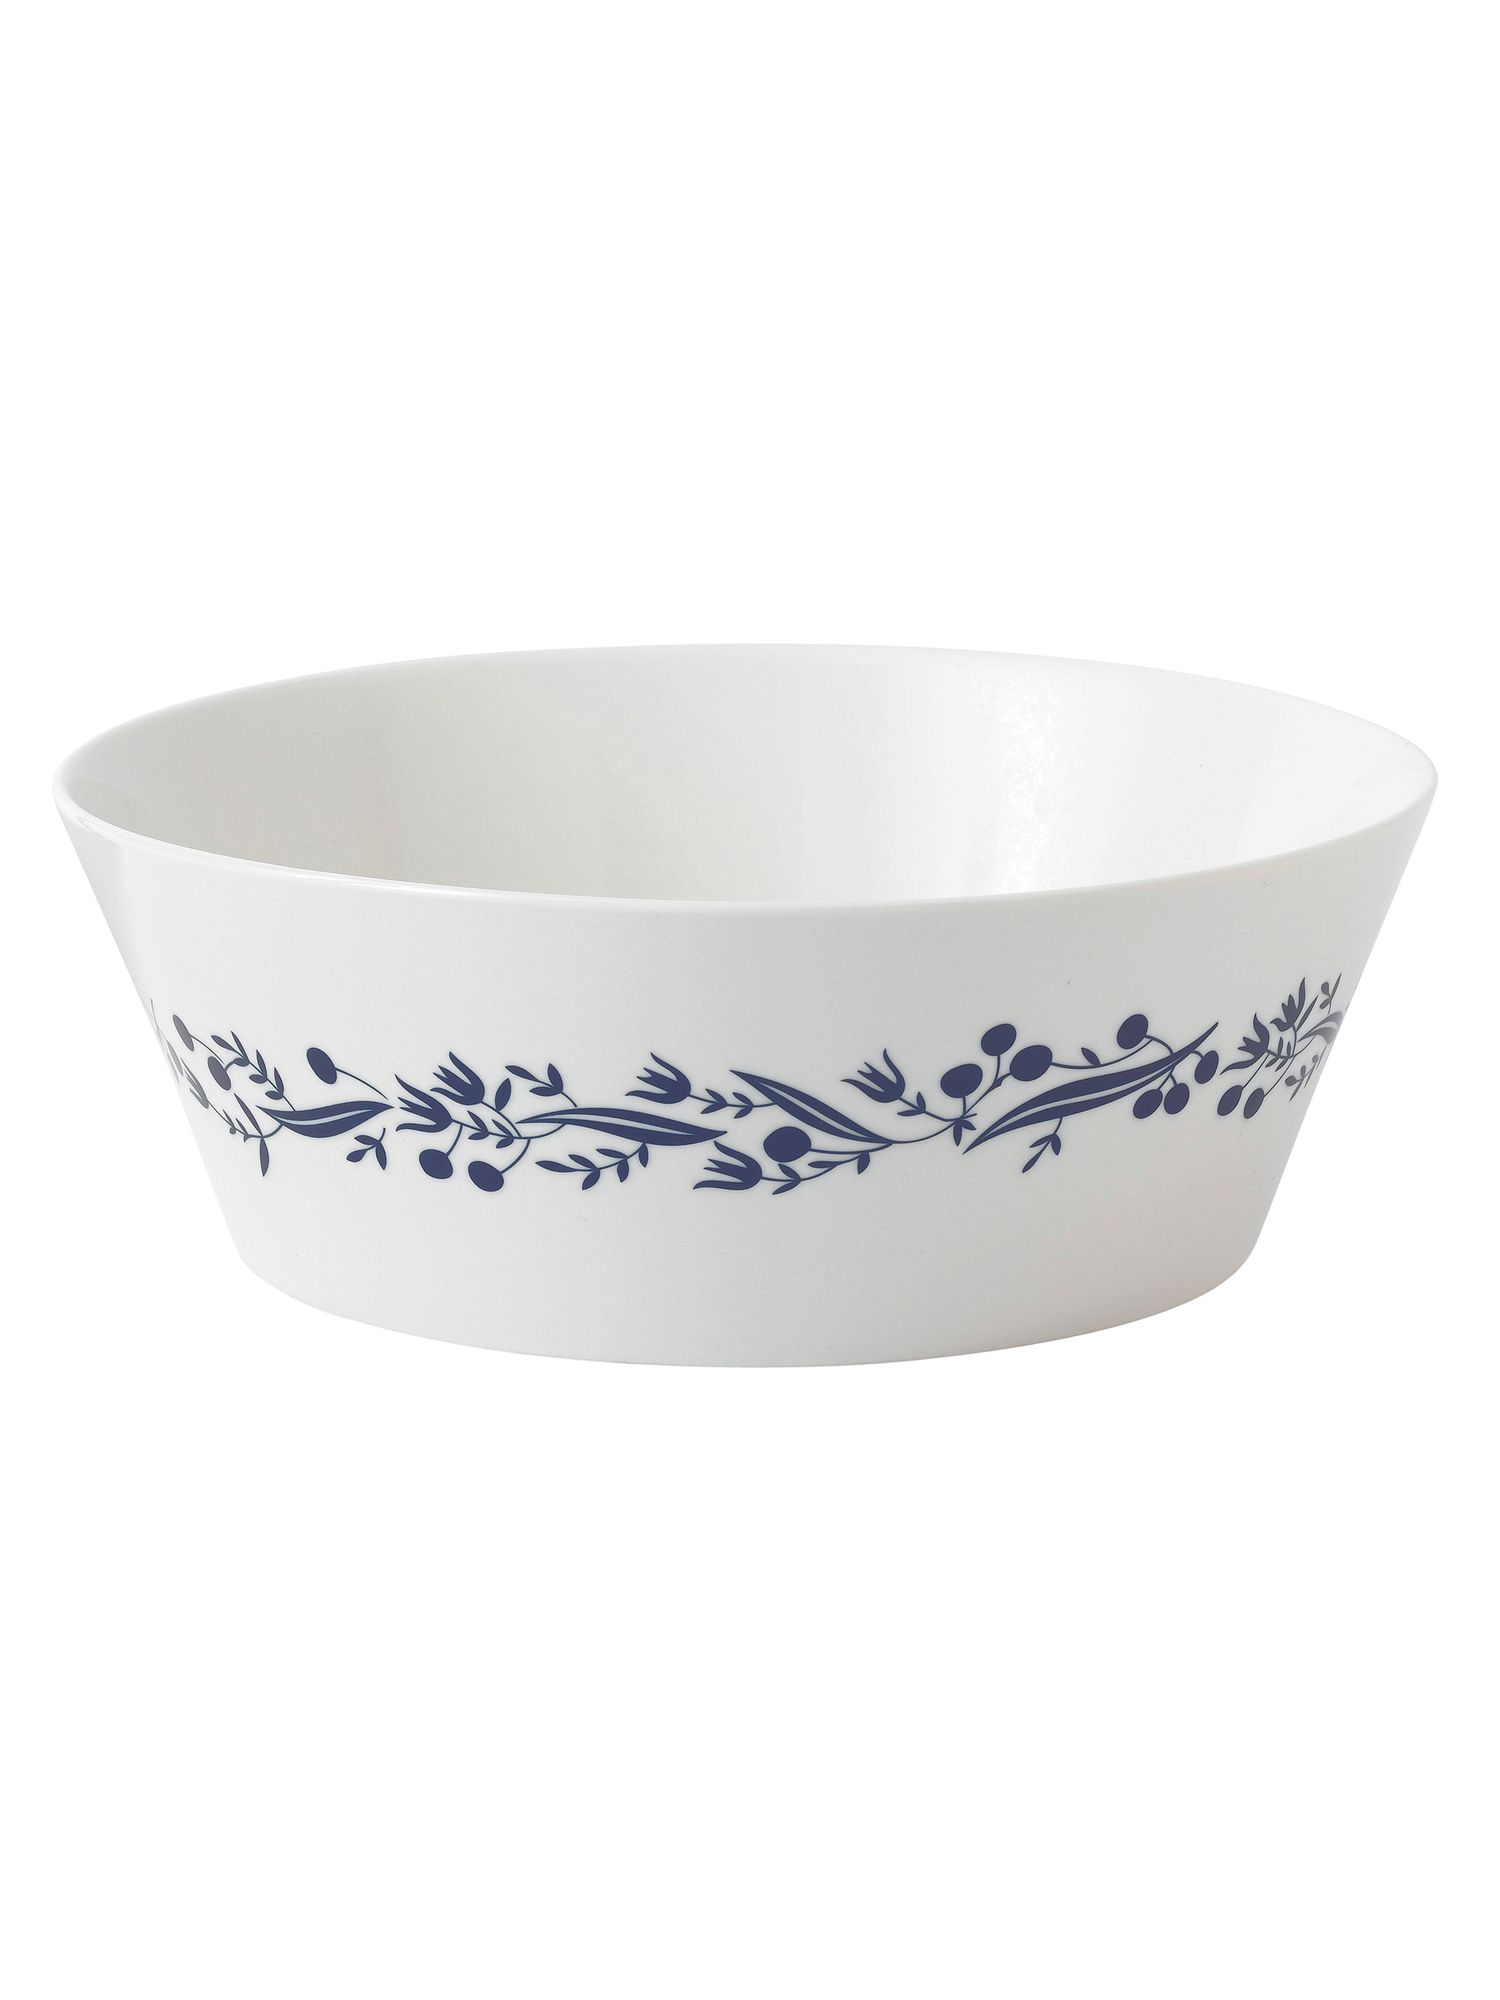 Fable garland 25cm serving bowl